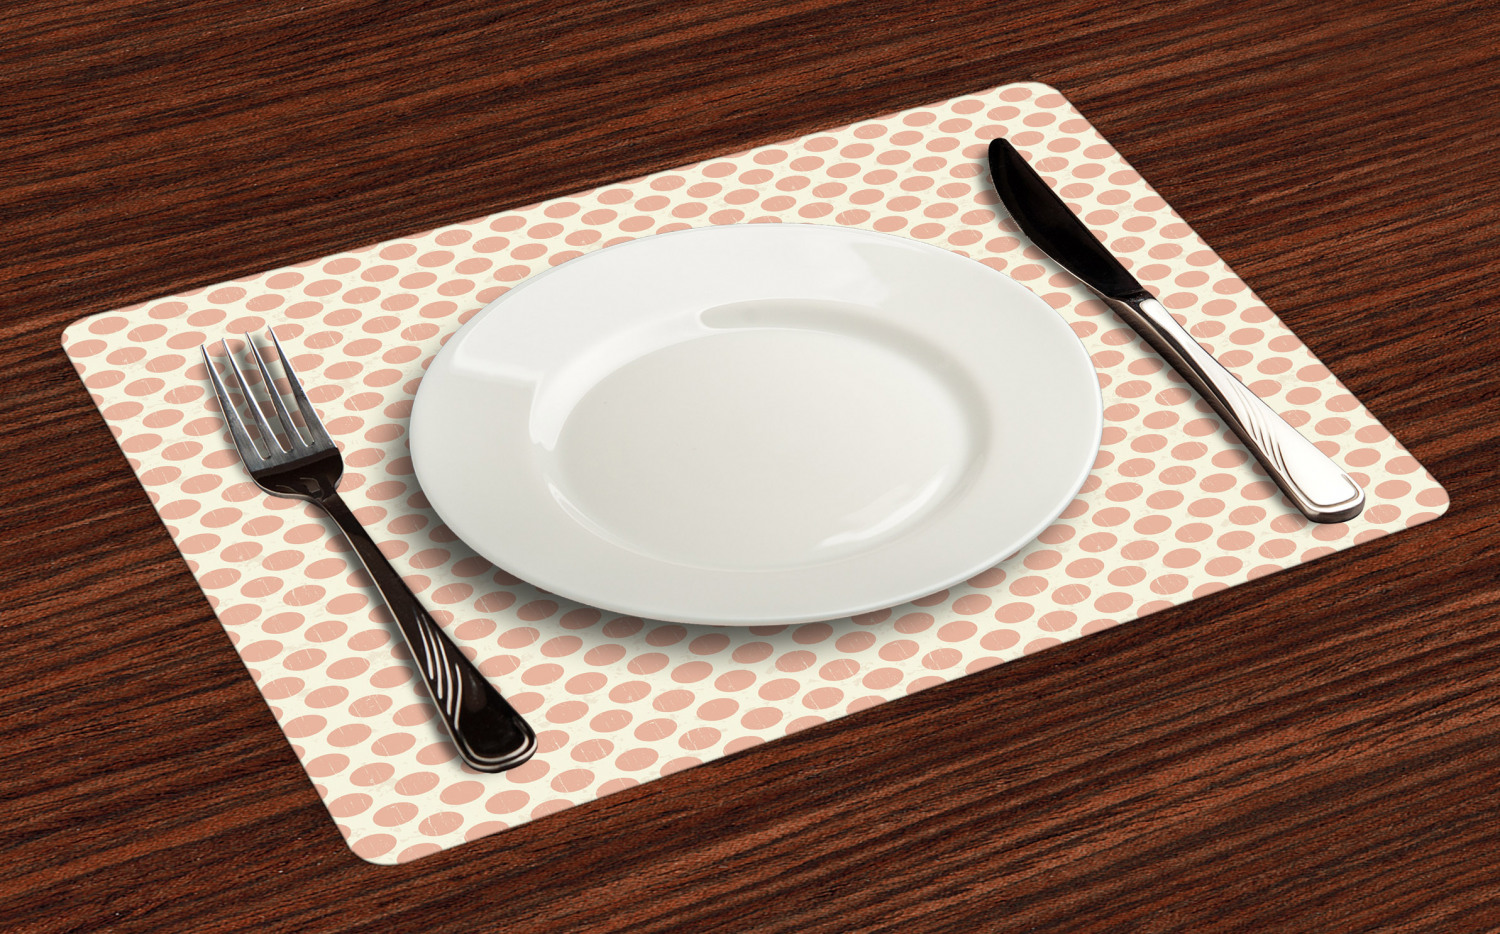 Ambesonne-Fabric-Place-Mats-Set-of-4-Placemats-for-Dining-Room-and-Kitchen-Table thumbnail 97